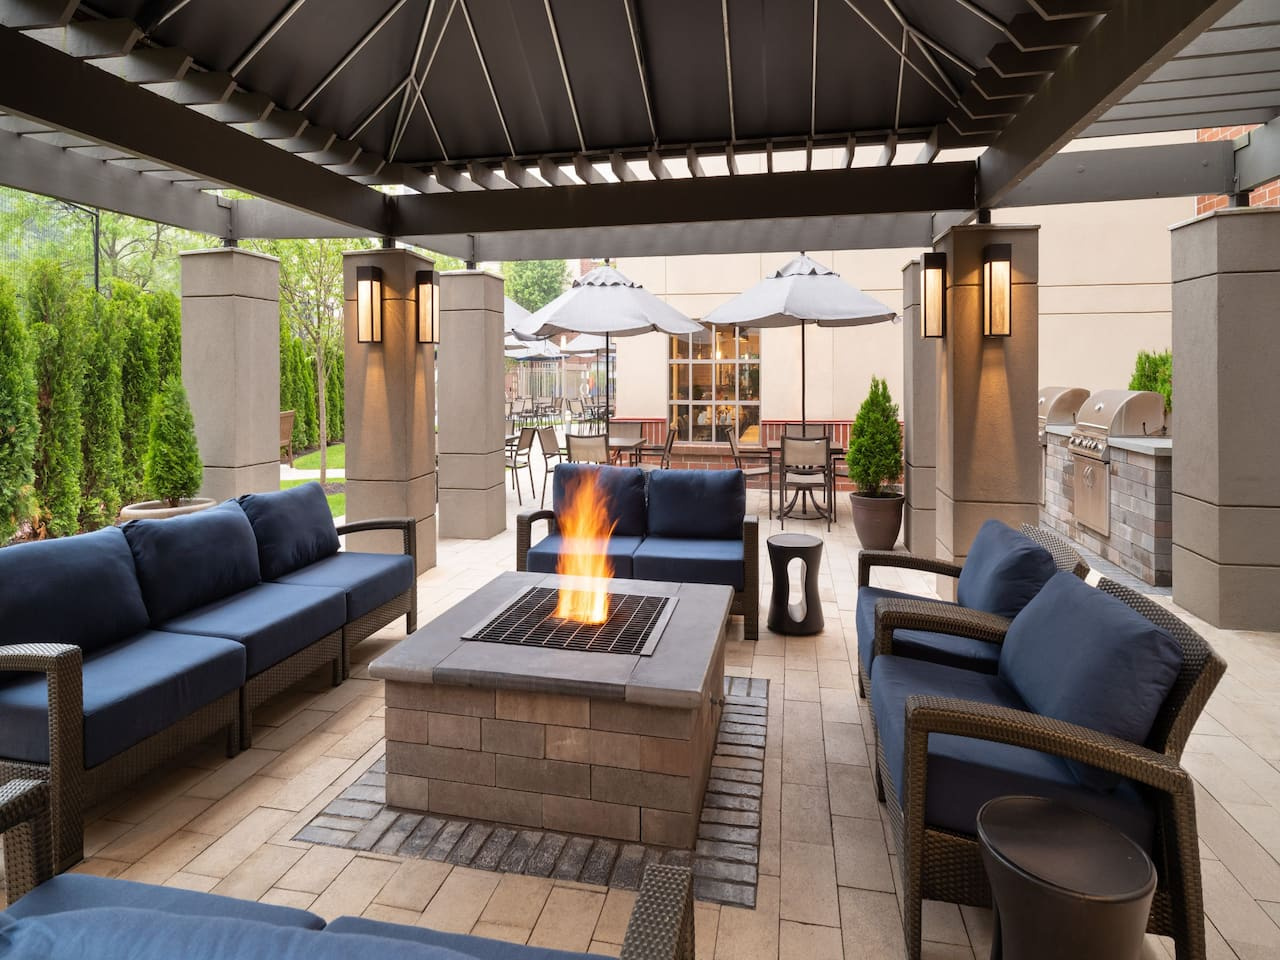 Hyatt House Fire Pit and Grill Seating